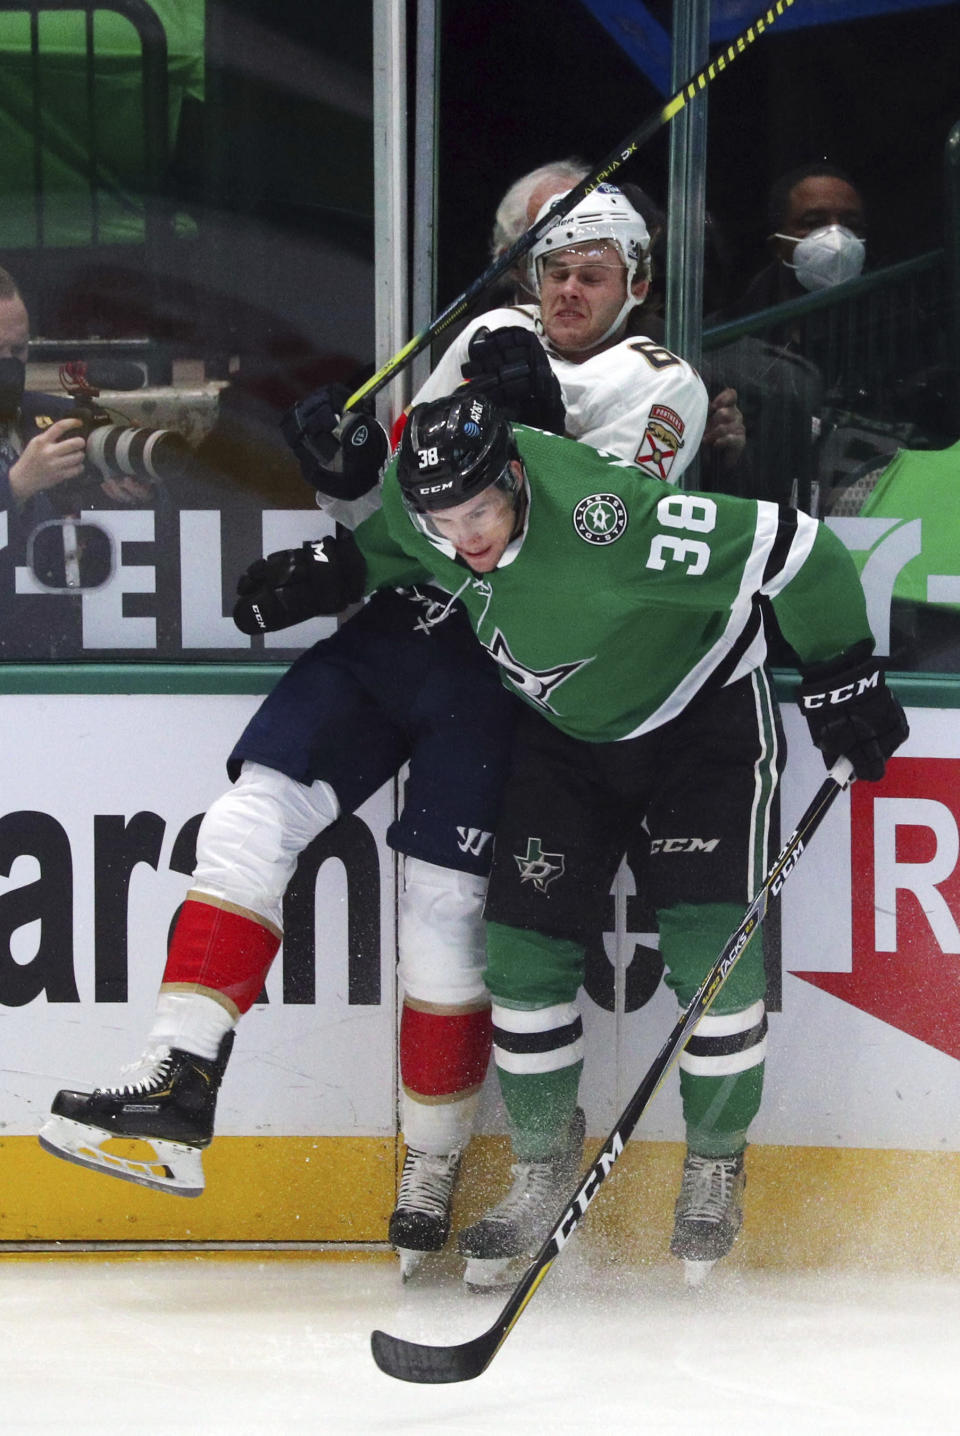 Florida Panthers defenseman Riley Stillman (61) gets checked into the boards by Dallas Stars center Joel L'Esperance (38) in the first period of an NHL hockey game on Sunday, March 28, 2021, in Dallas. (AP Photo/Richard W. Rodriguez)